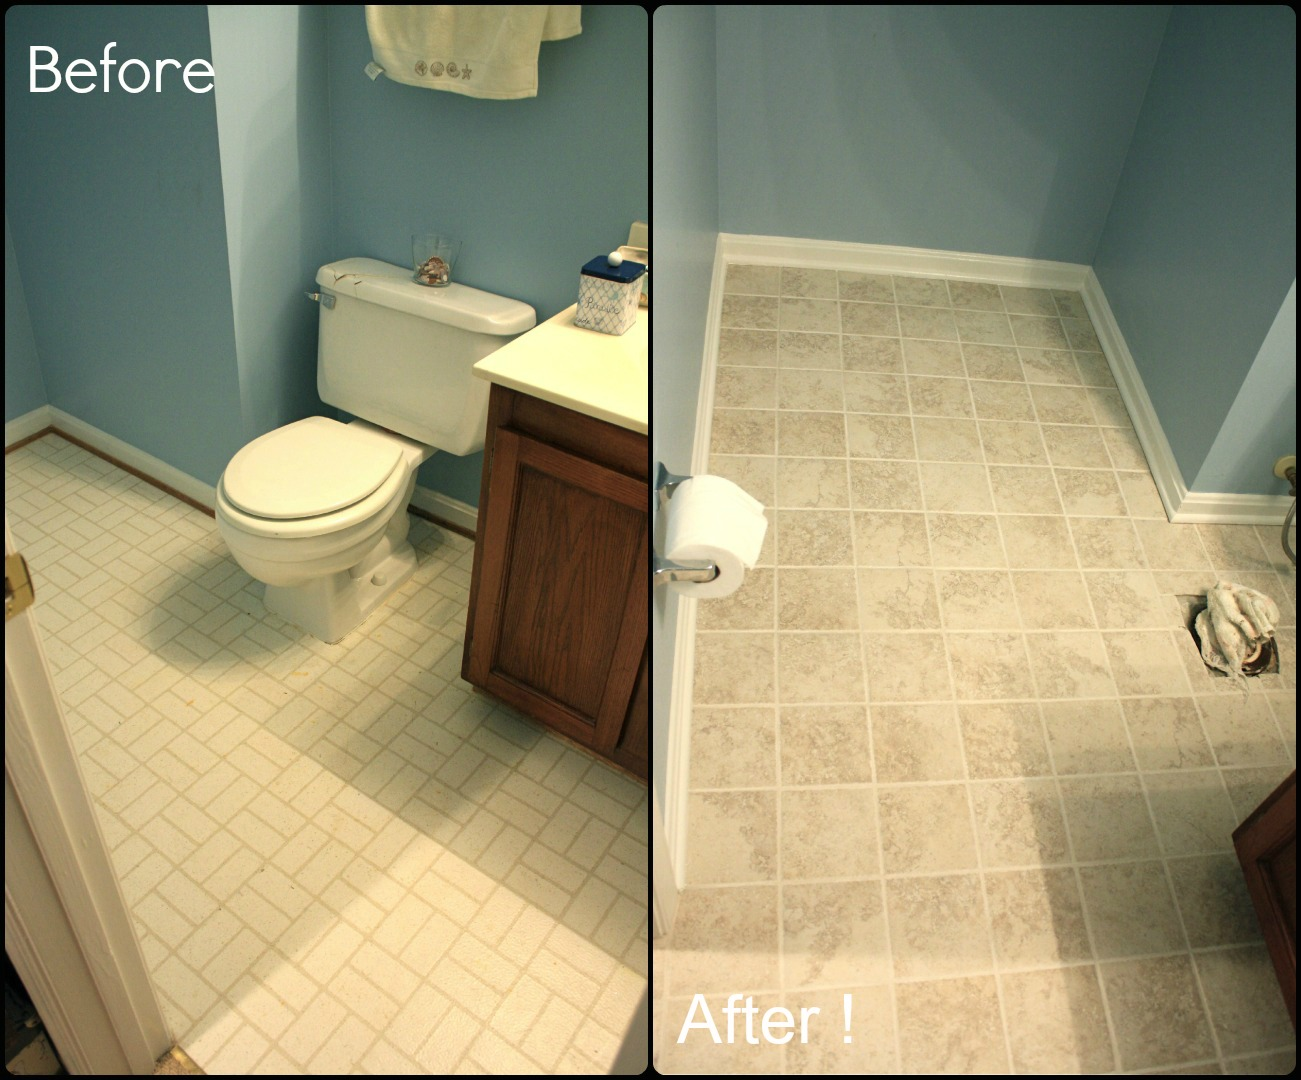 Simply diy 2 bathroom floor part 3 done for Painting bathroom tile before and after